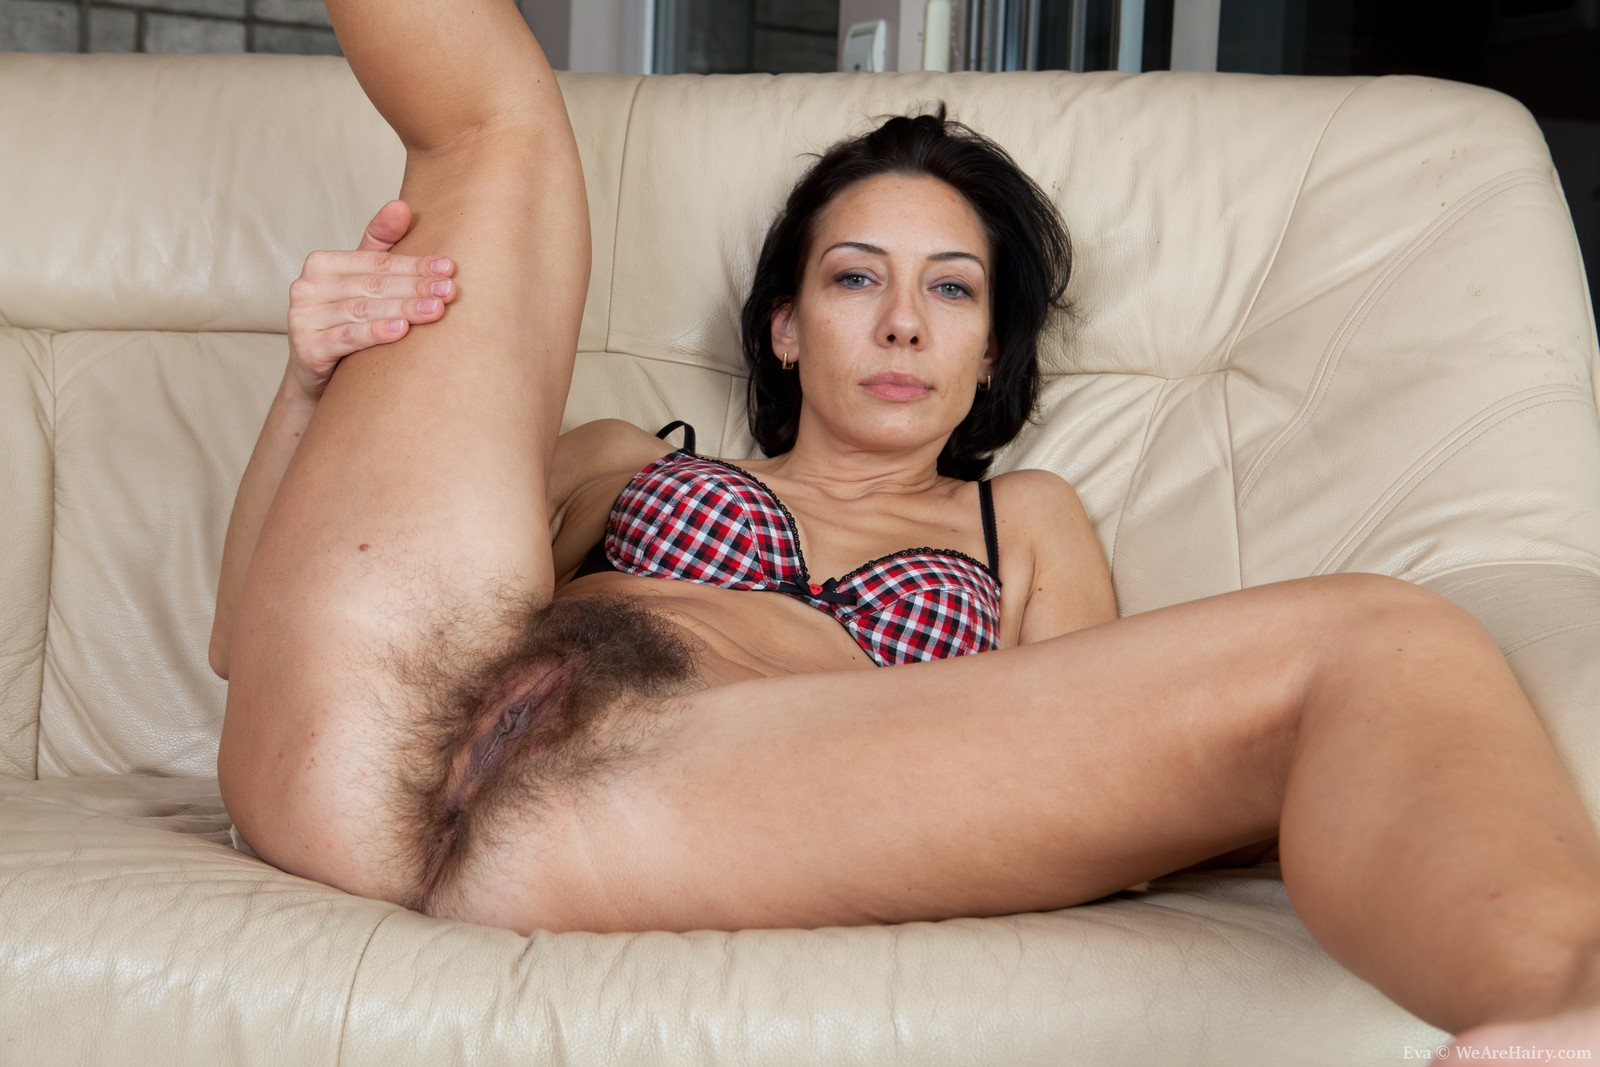 Erotic hairy naked porn